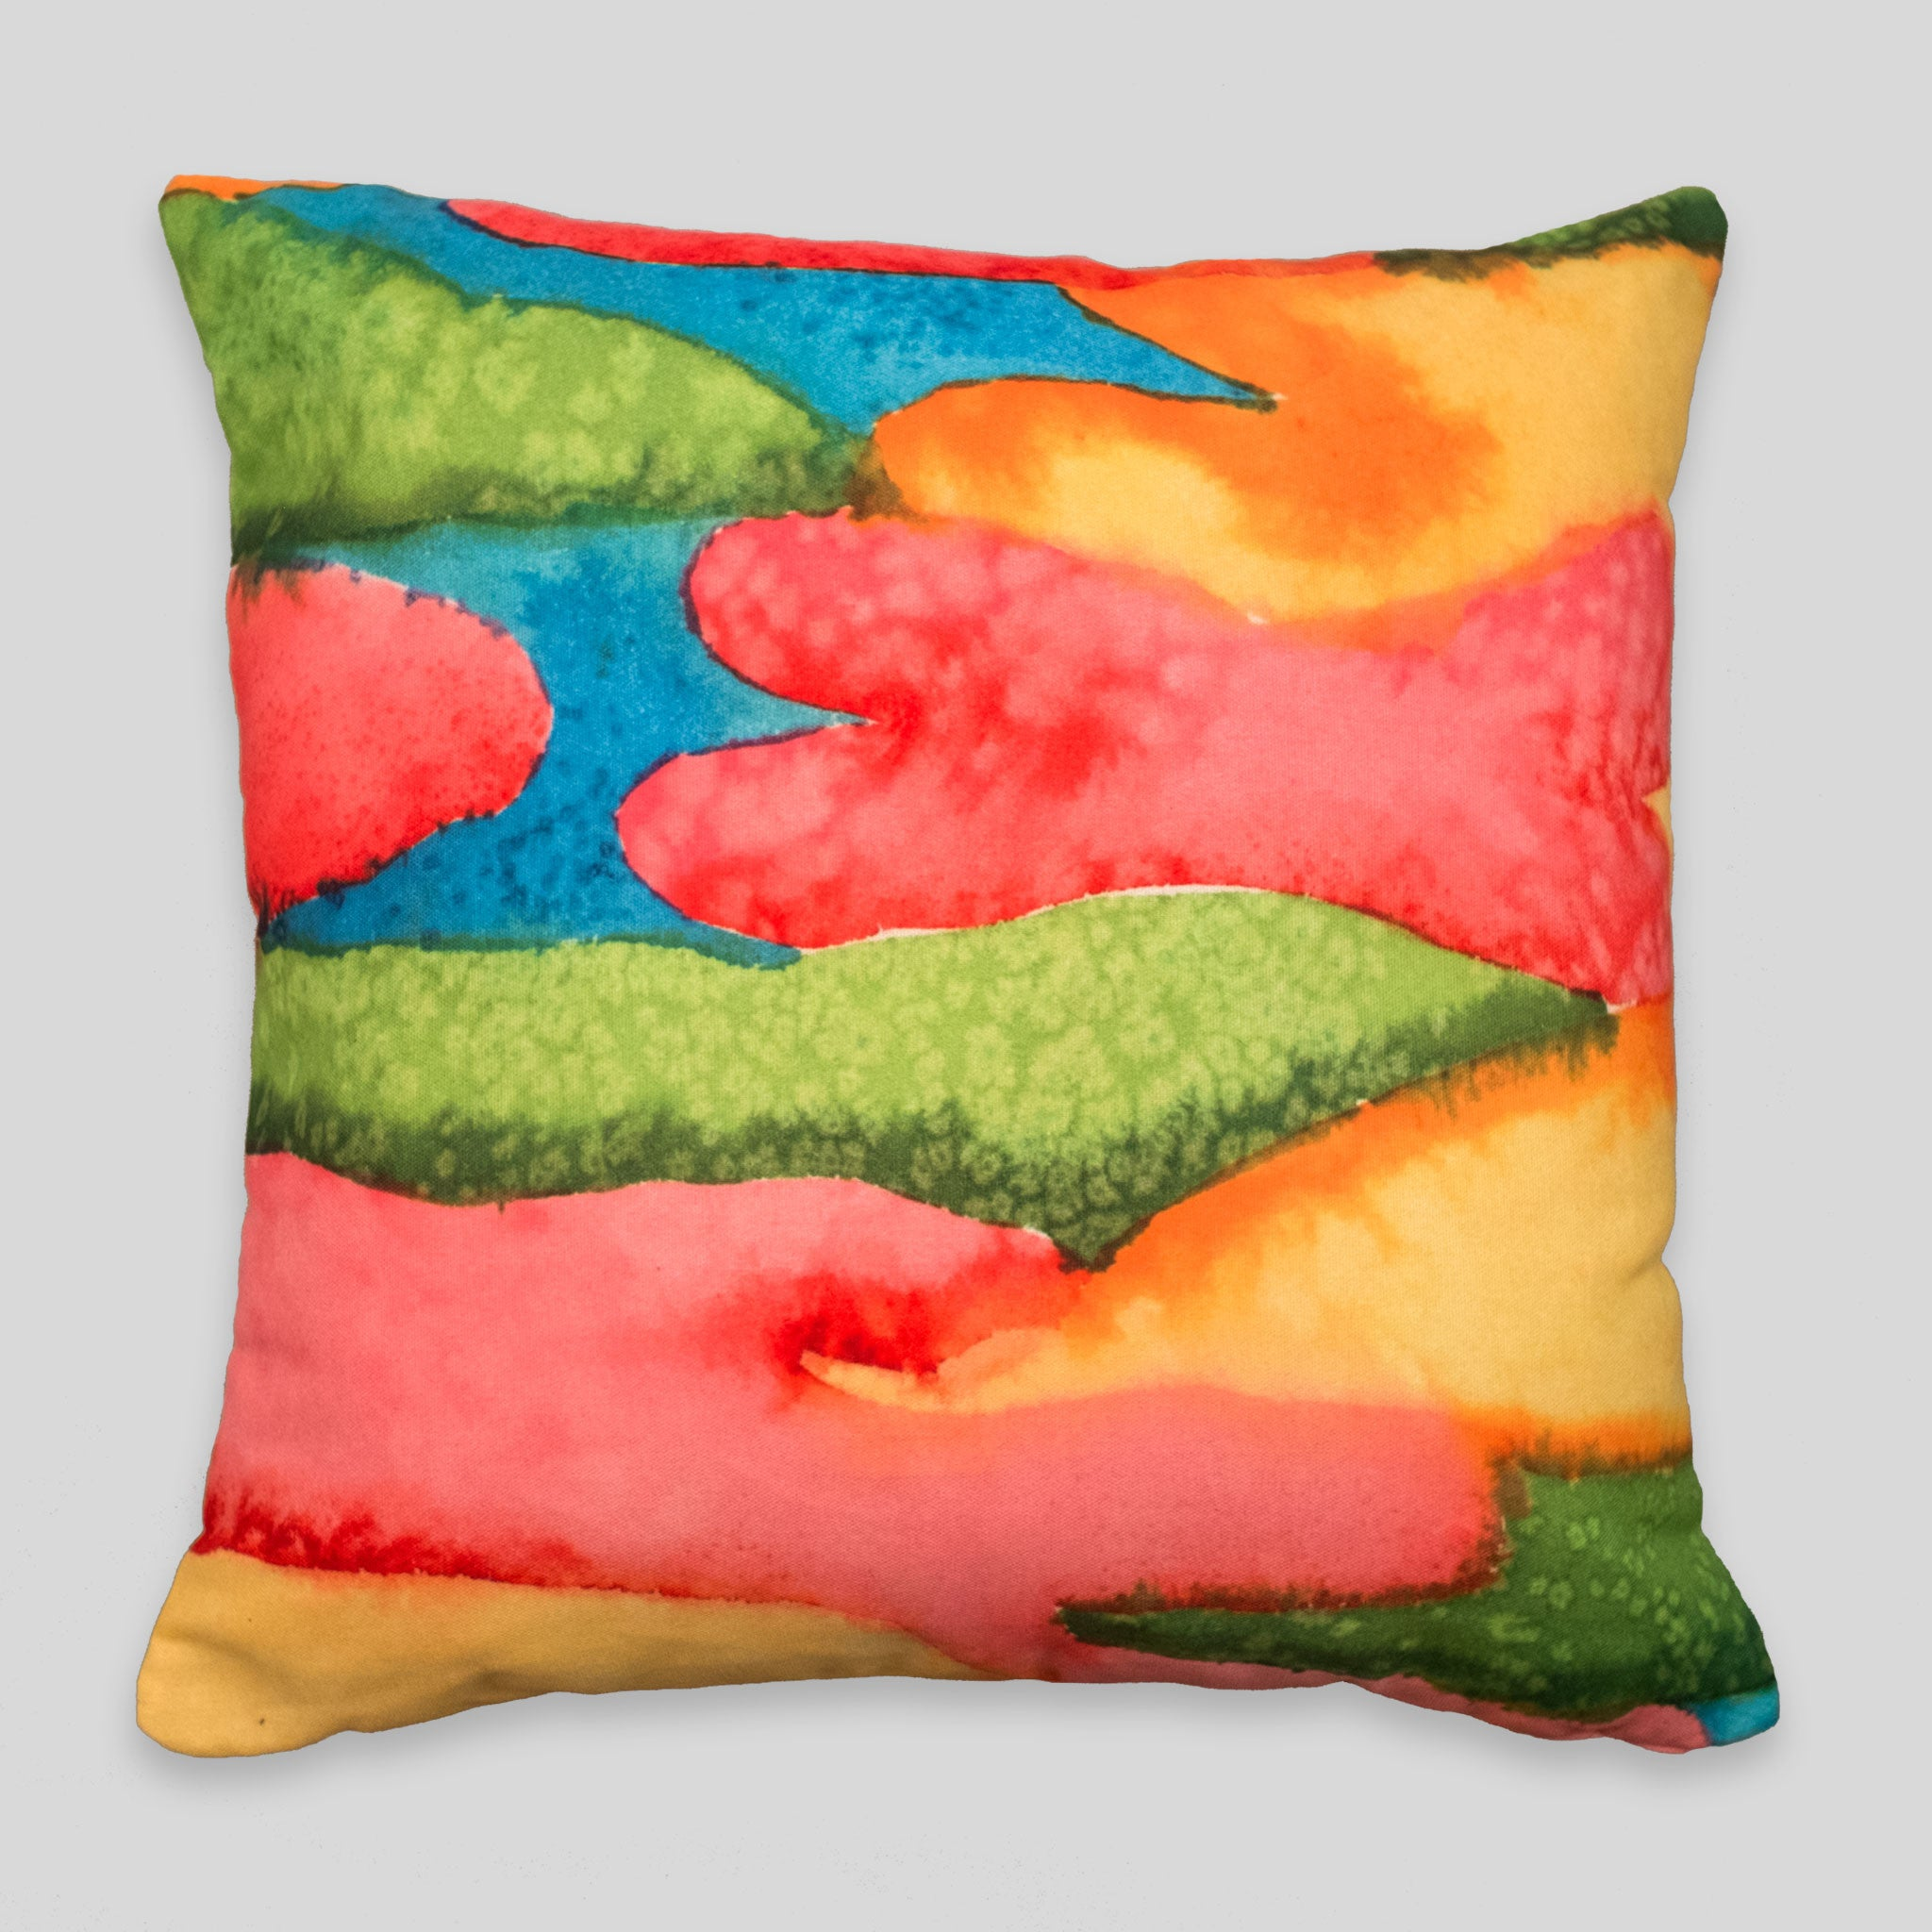 Watercolor Stains Pillow